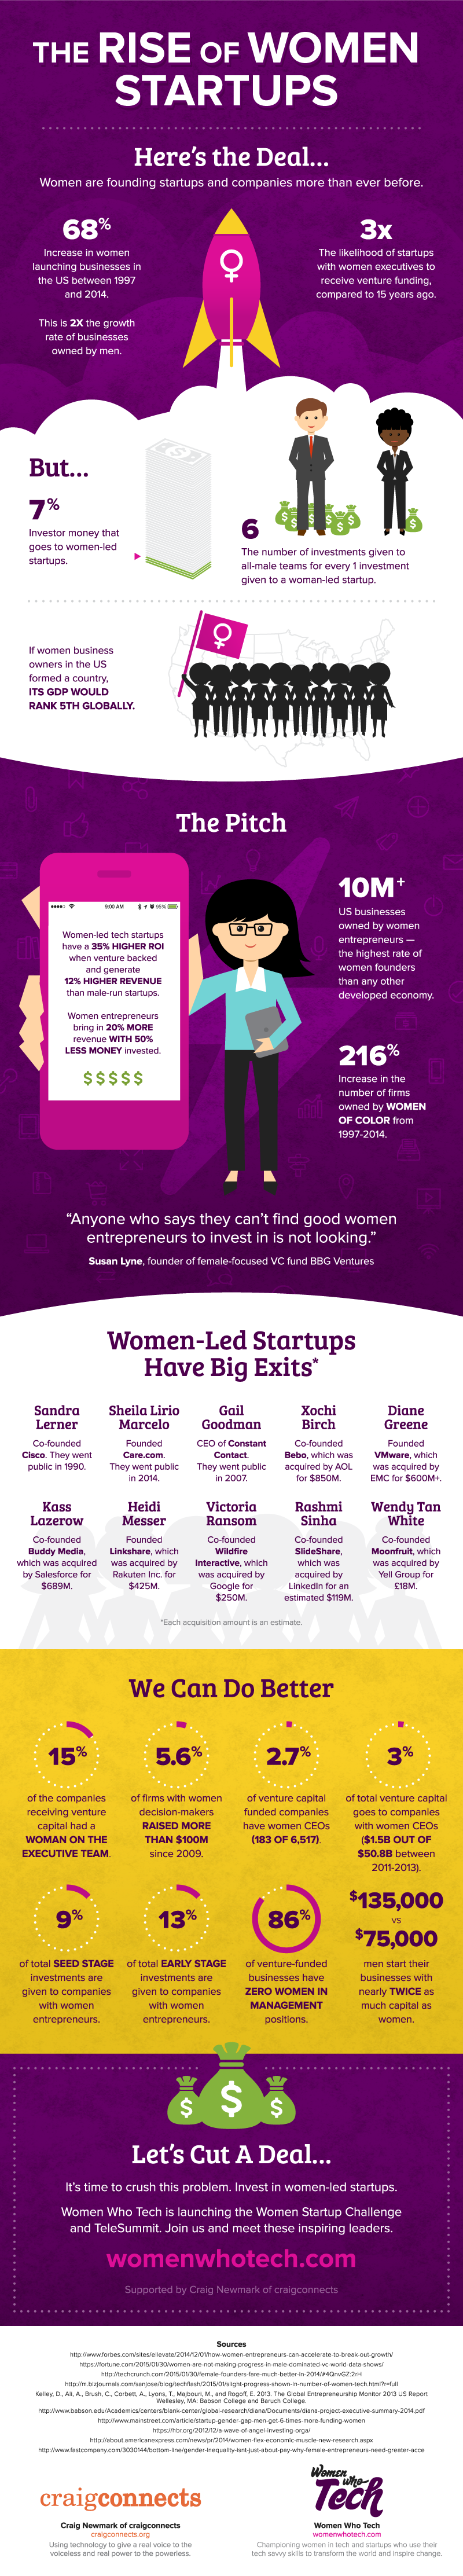 the-rise-of-women-startups